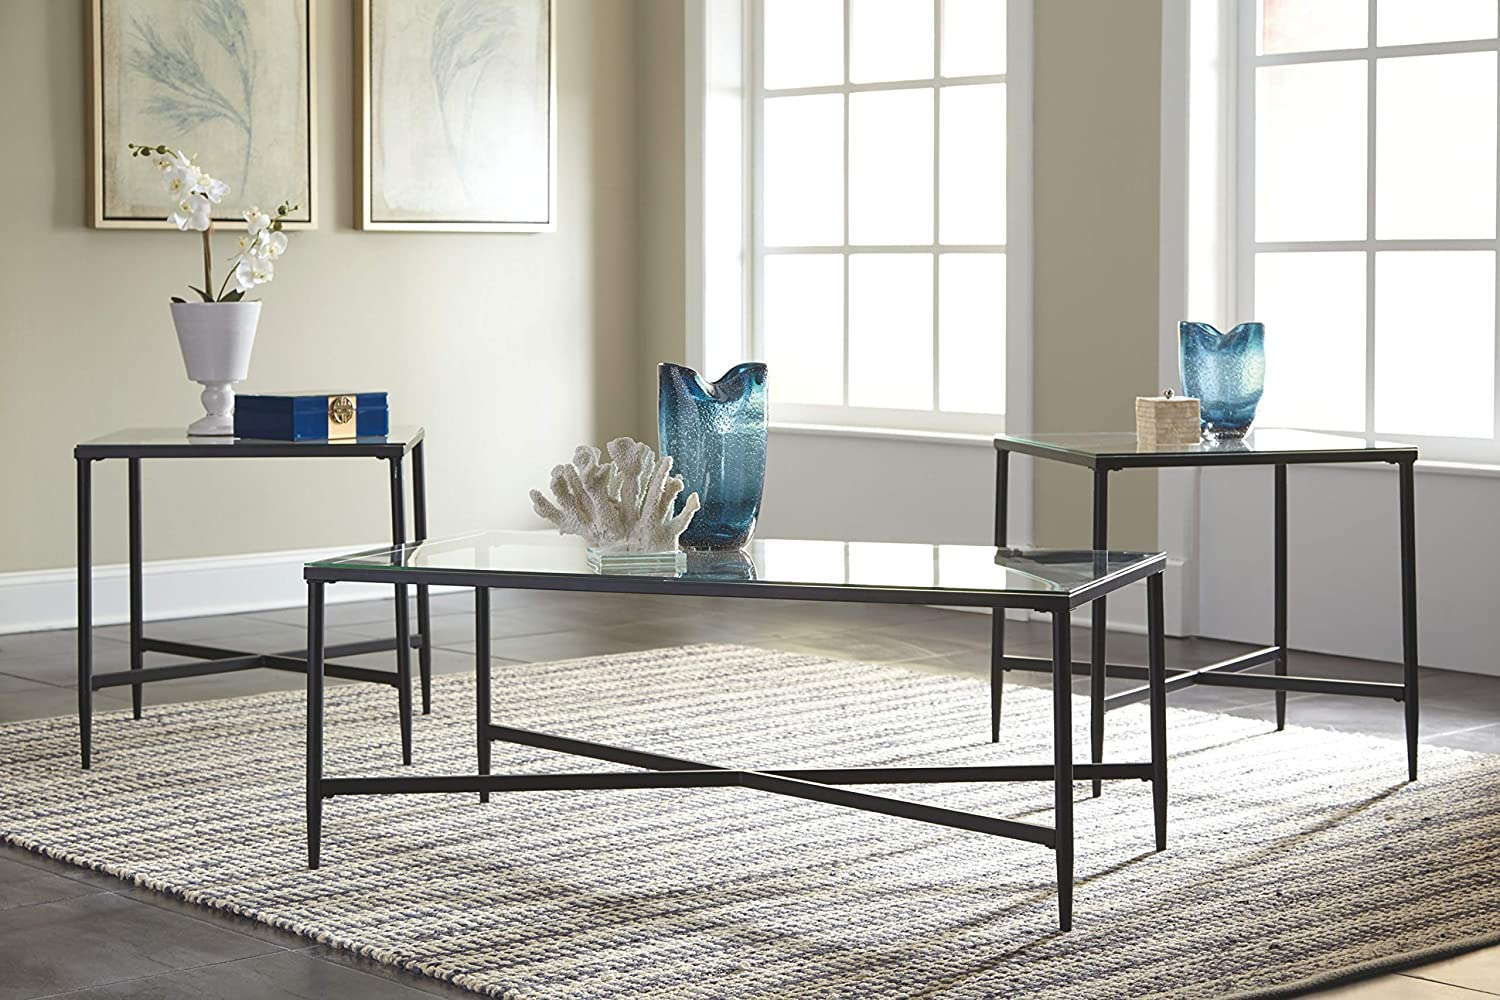 Signature Design by Ashley - Augeron Contemporary 3-Piece Table Set - Includes Cocktail Table & 2 End Tables, Black